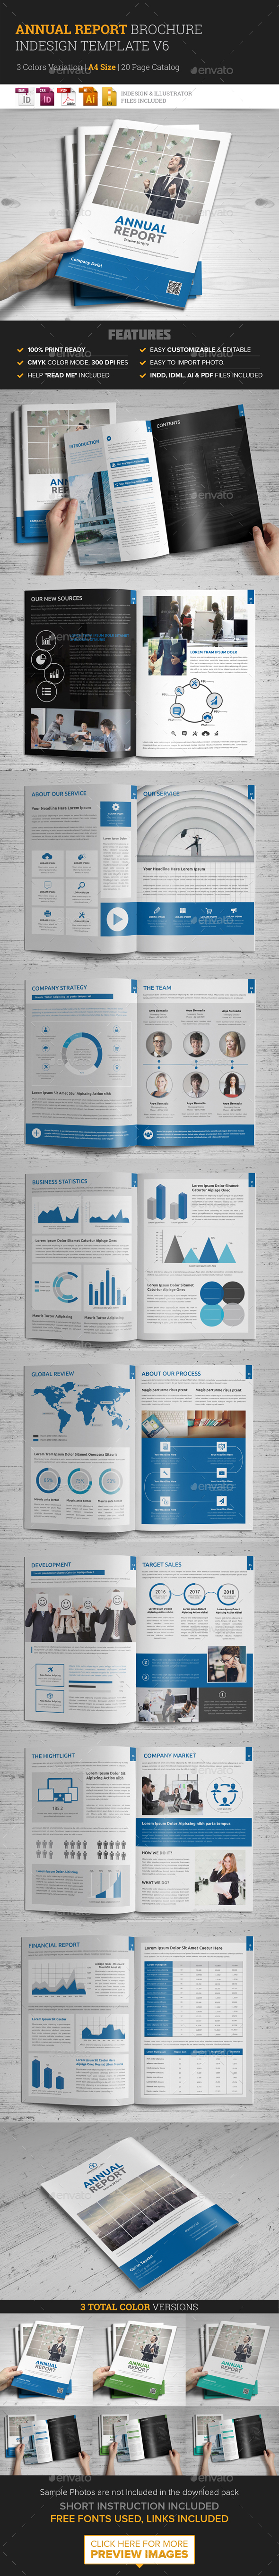 Annual Report Brochure design 6 - Corporate Brochures